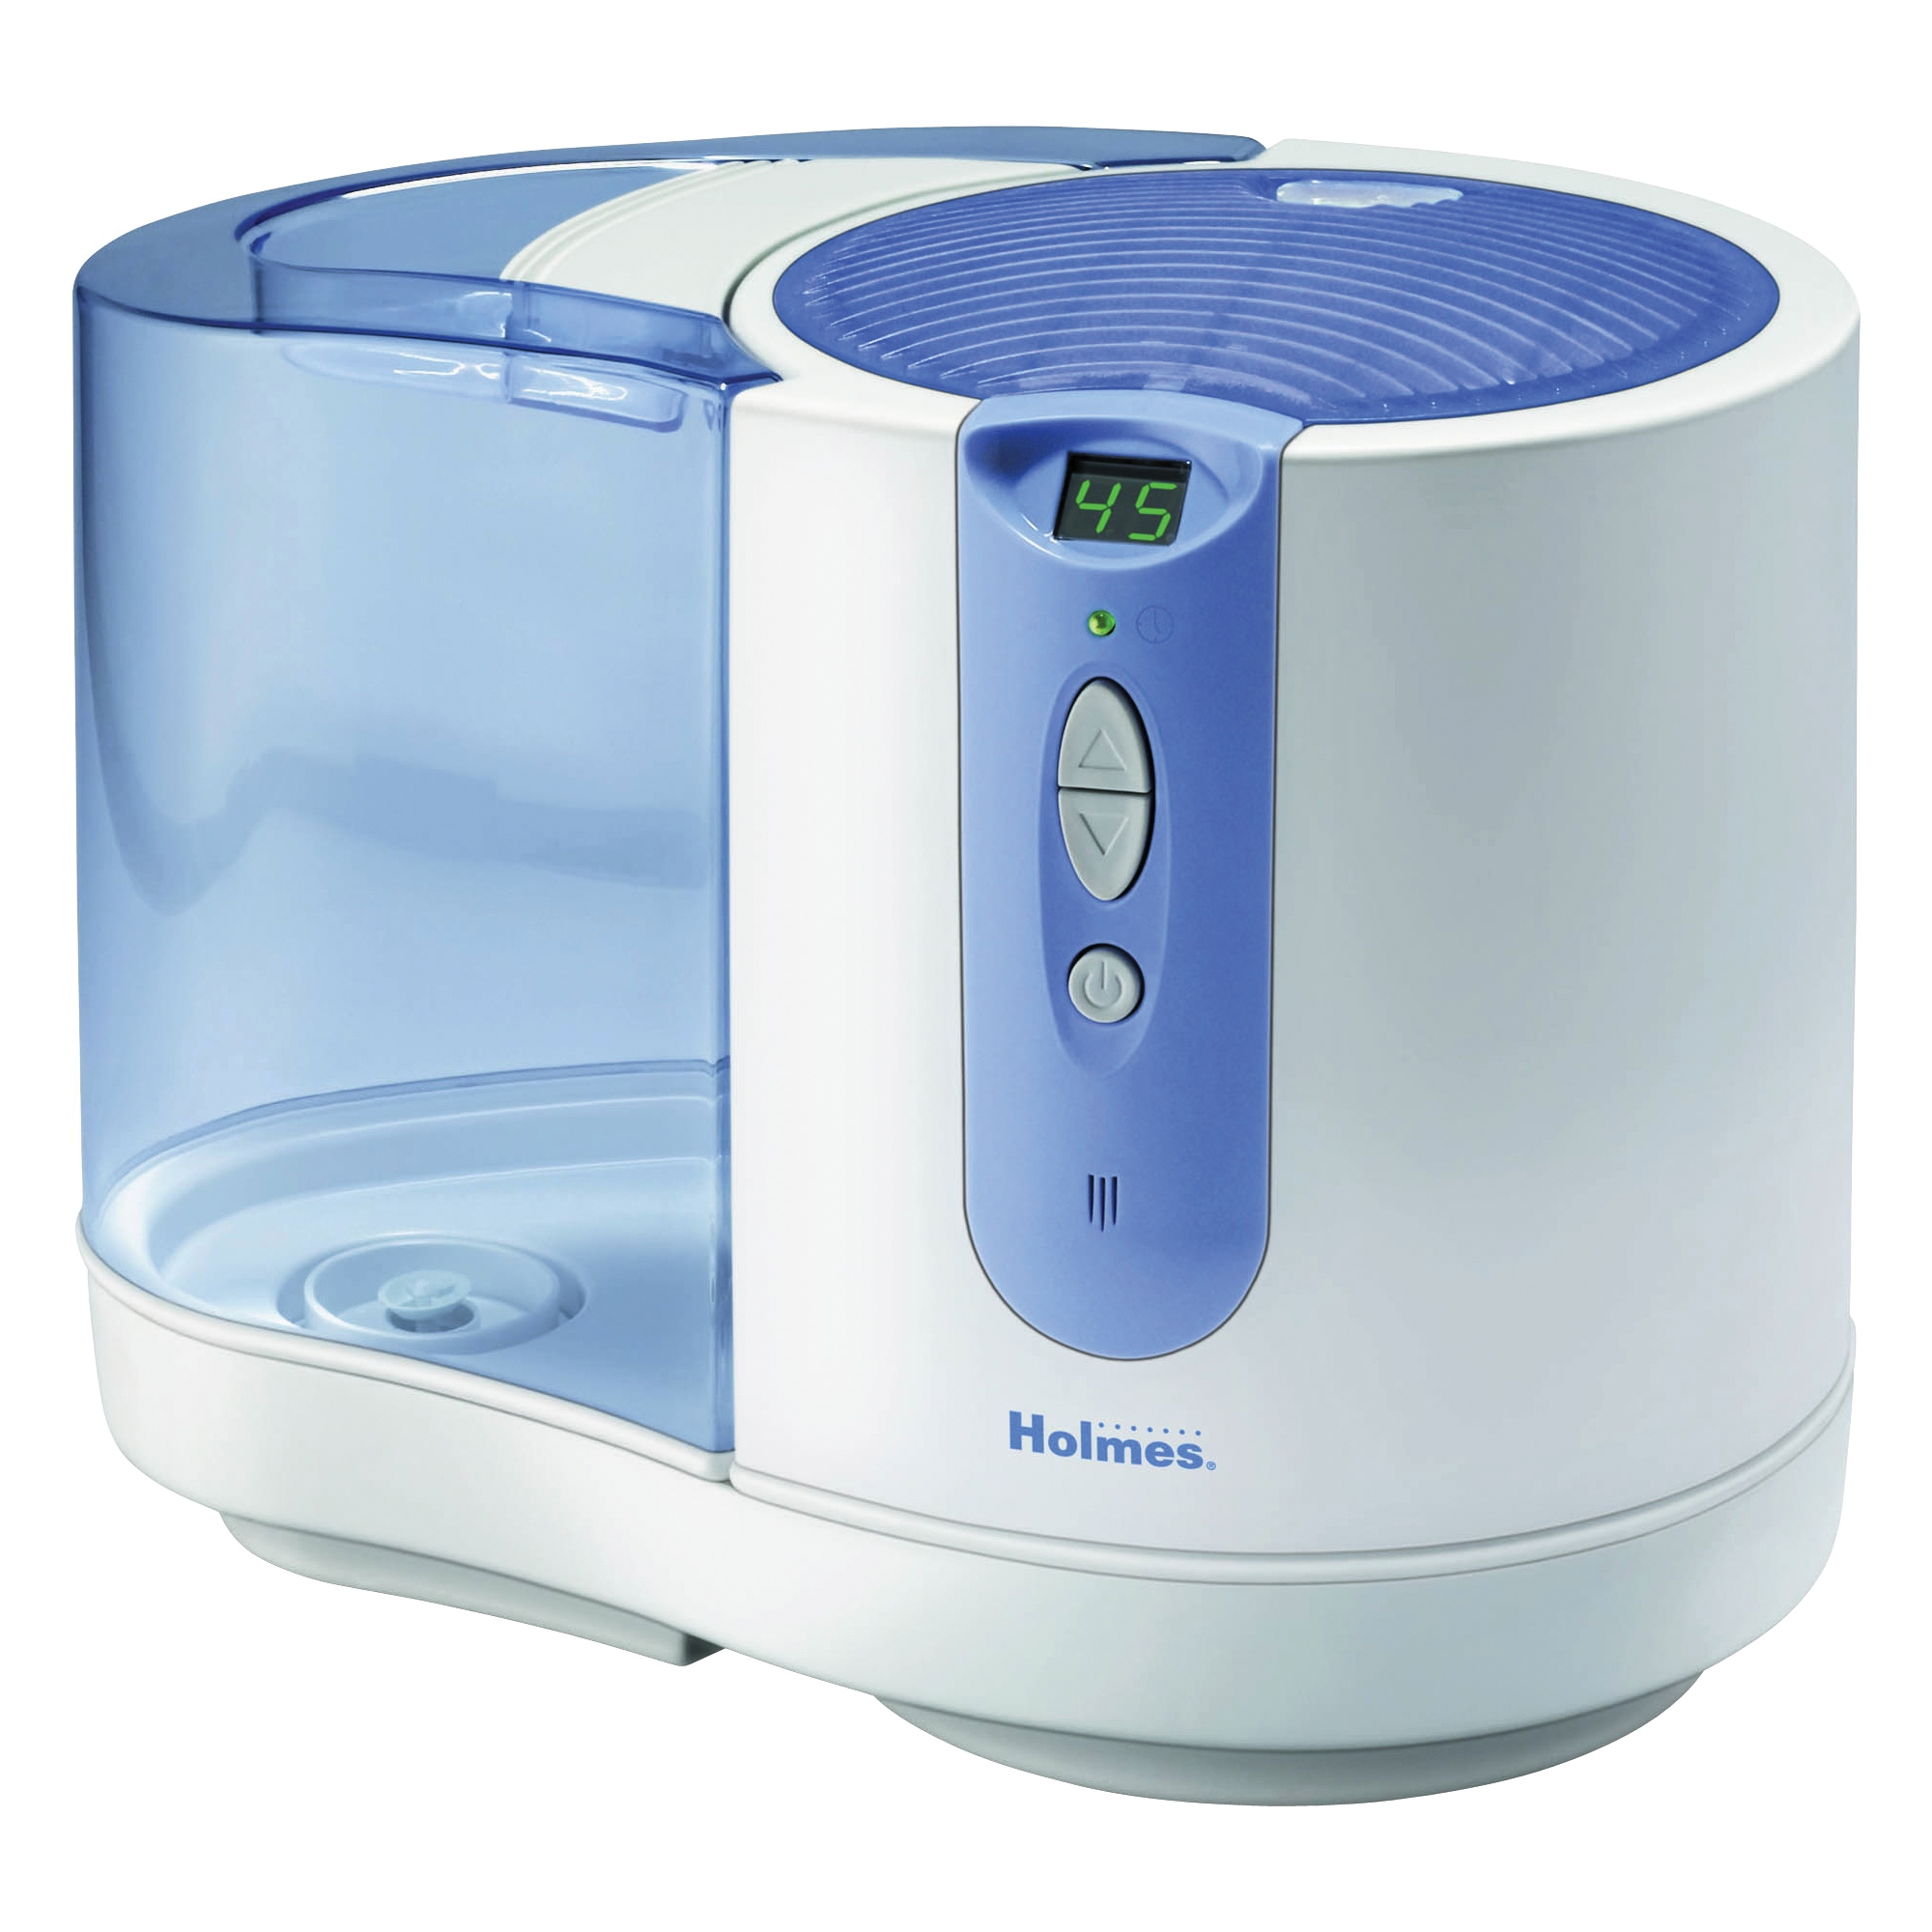 Picture of HOLMES HM1865-U Cool Mist Humidifier, 120 VAC, 1.5 gal Tank, Digital Control